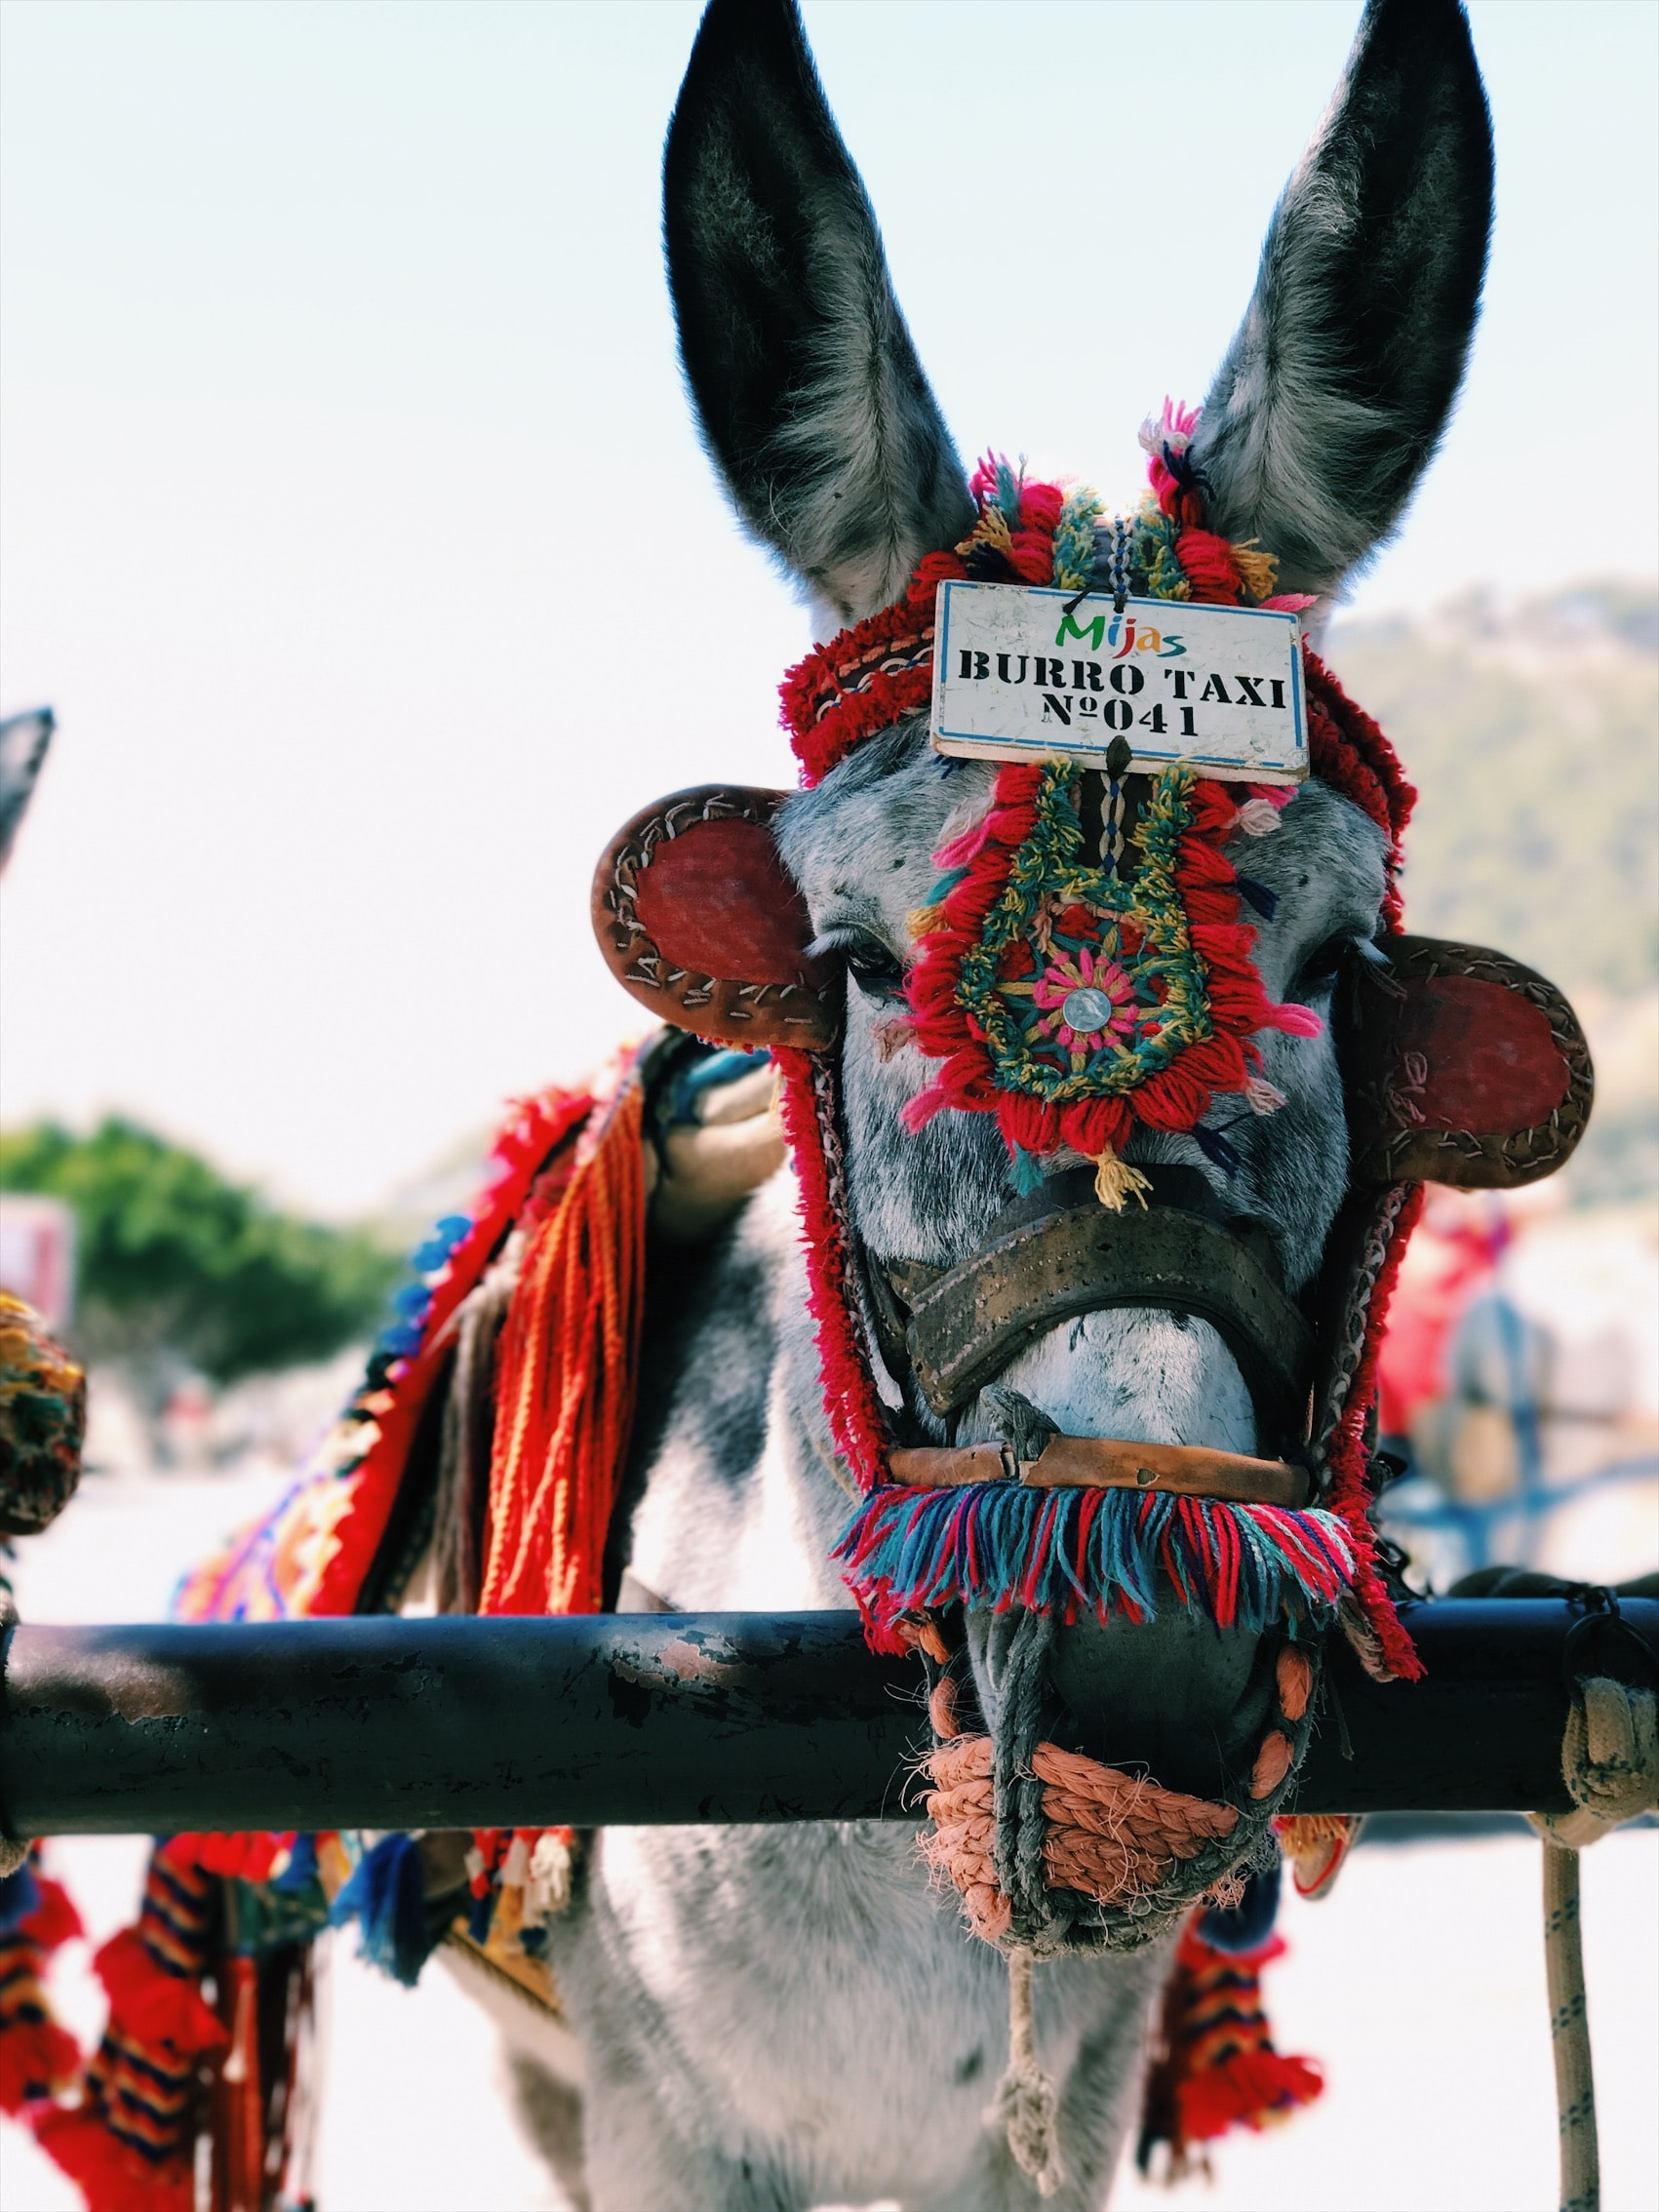 Donkey for transportation wearing ornate bridle and reins